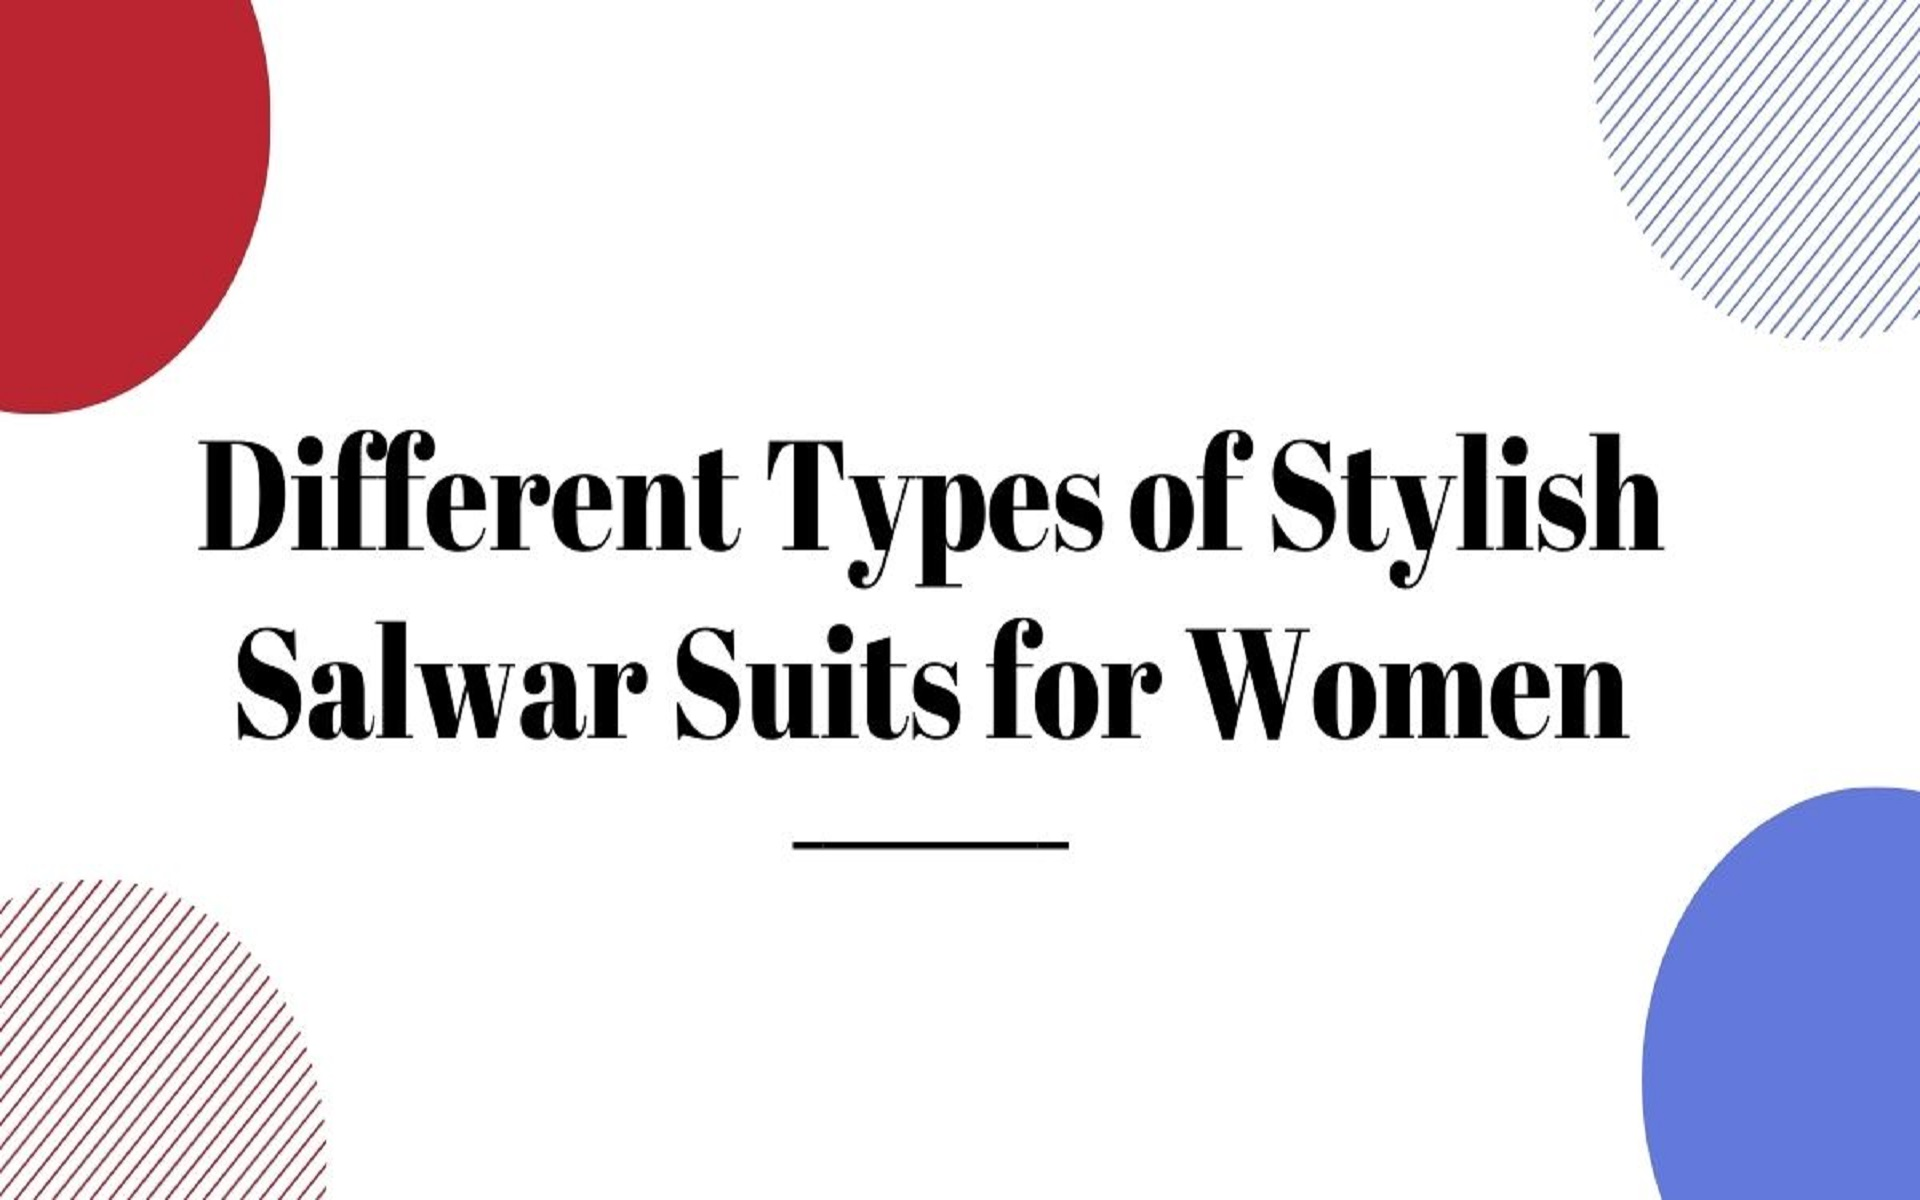 Different Types of Stylish Salwar Suits for Women